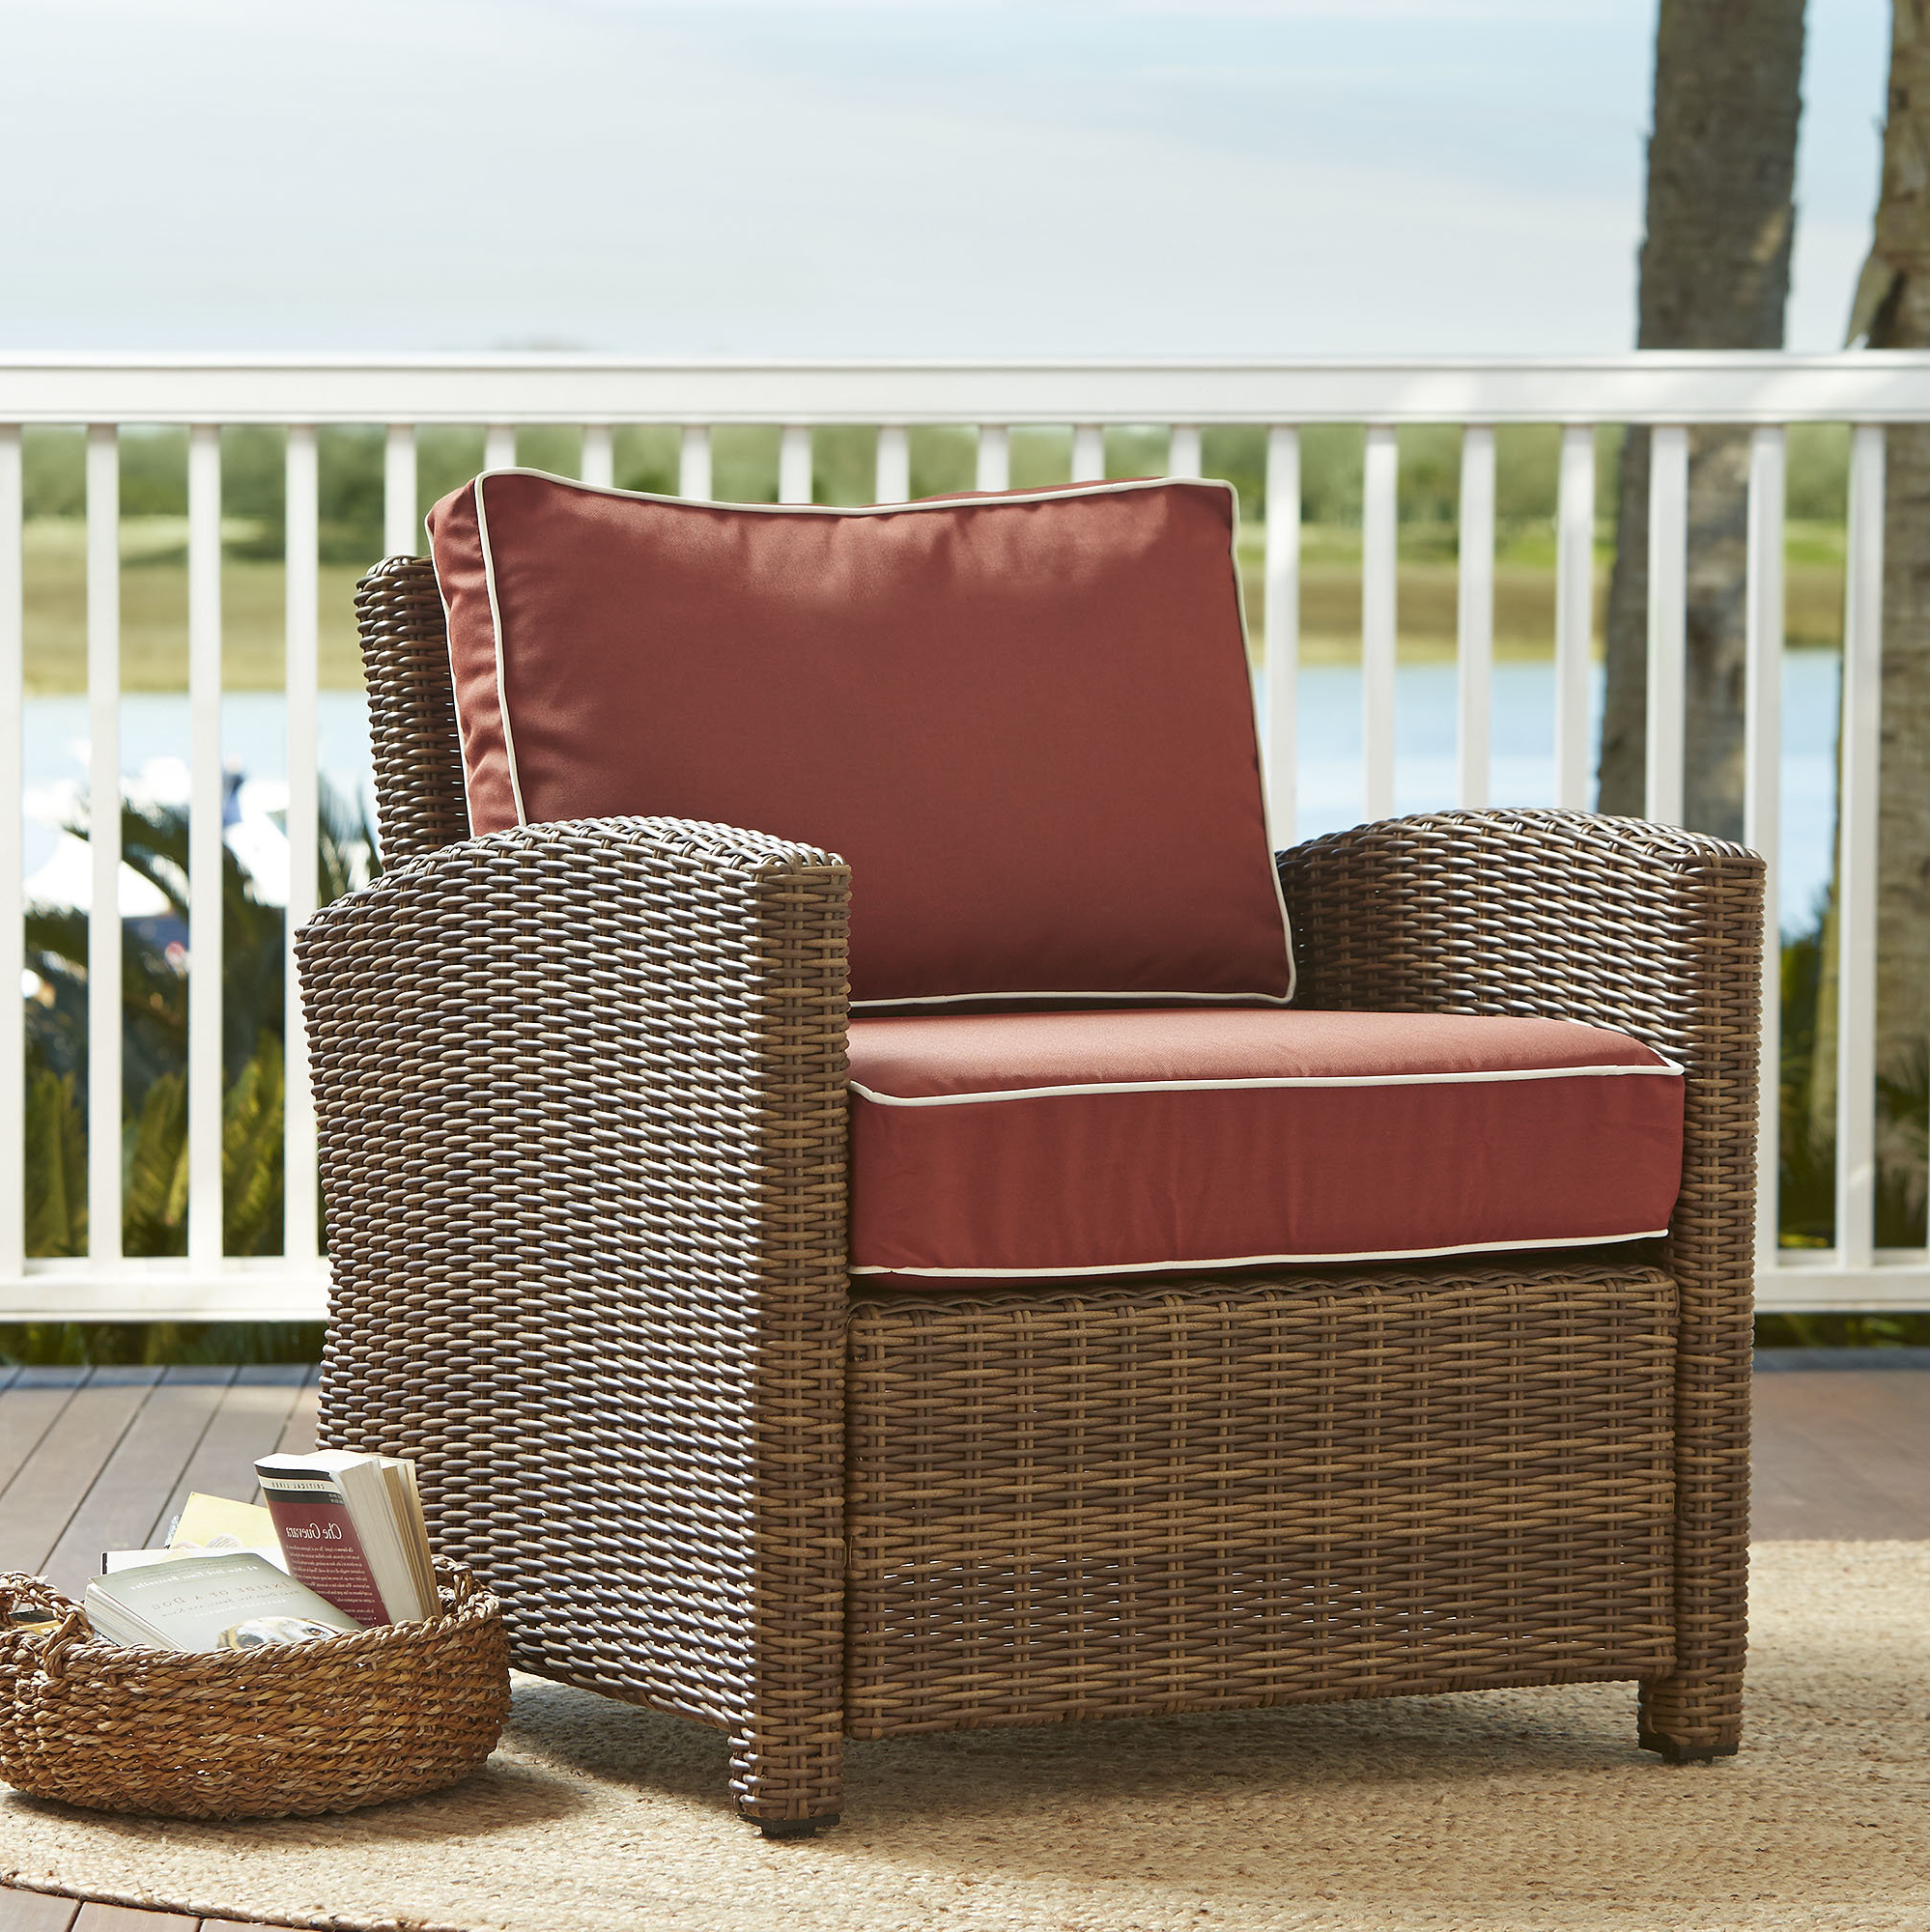 Lawson Patio Chair With Cushions Within Best And Newest Belton Patio Sofas With Cushions (View 19 of 25)